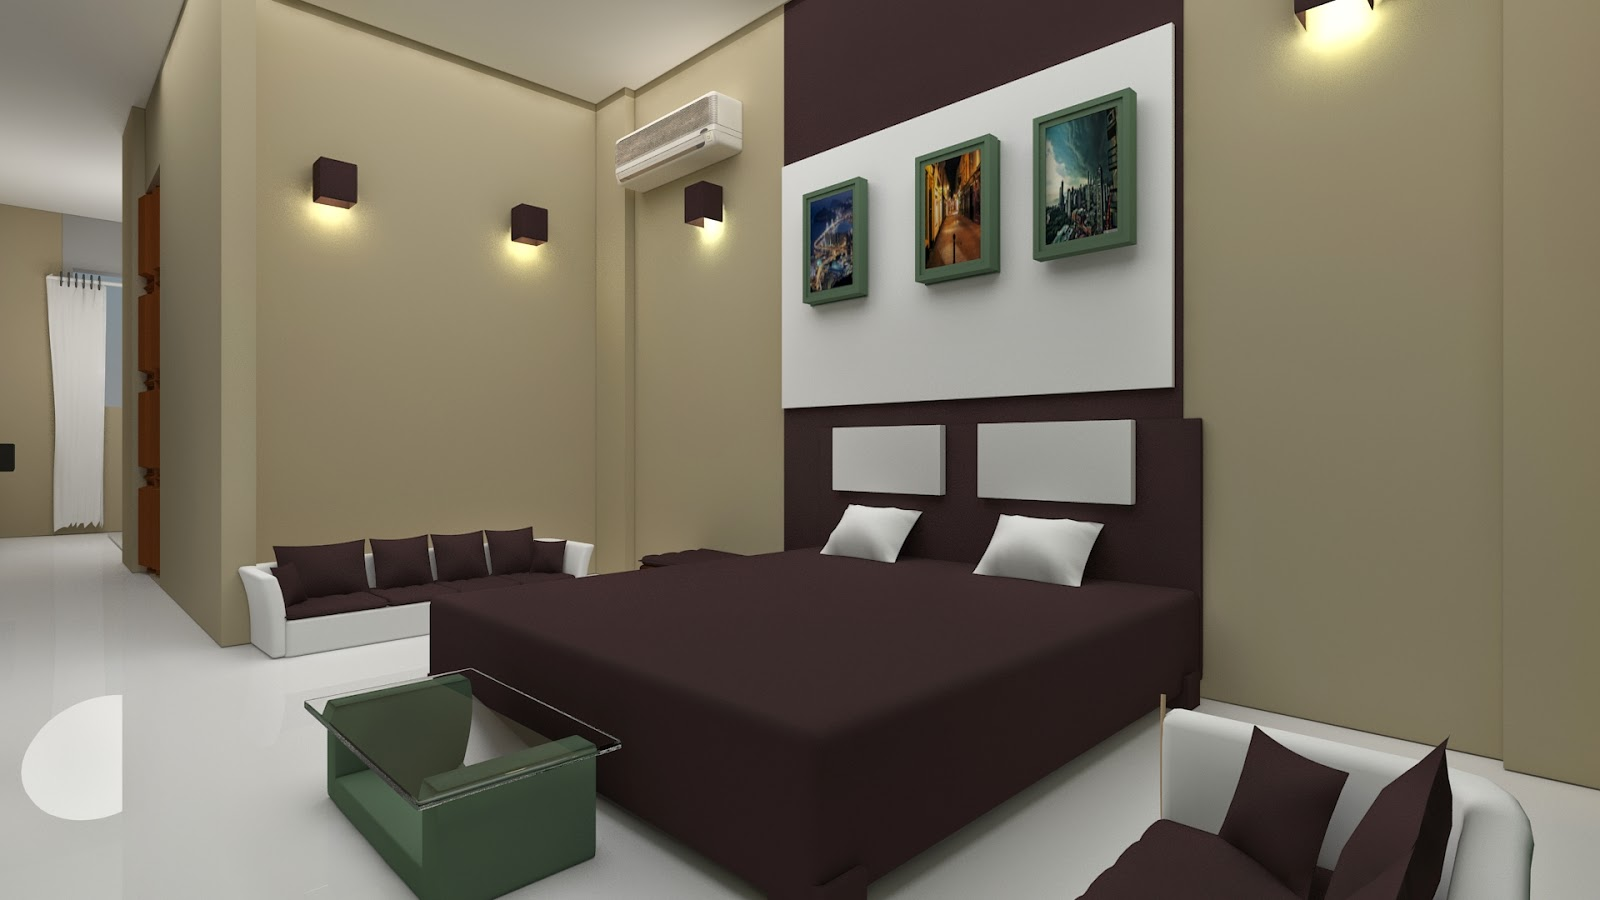 Autodesk 3ds max interior design home design for 3ds max design